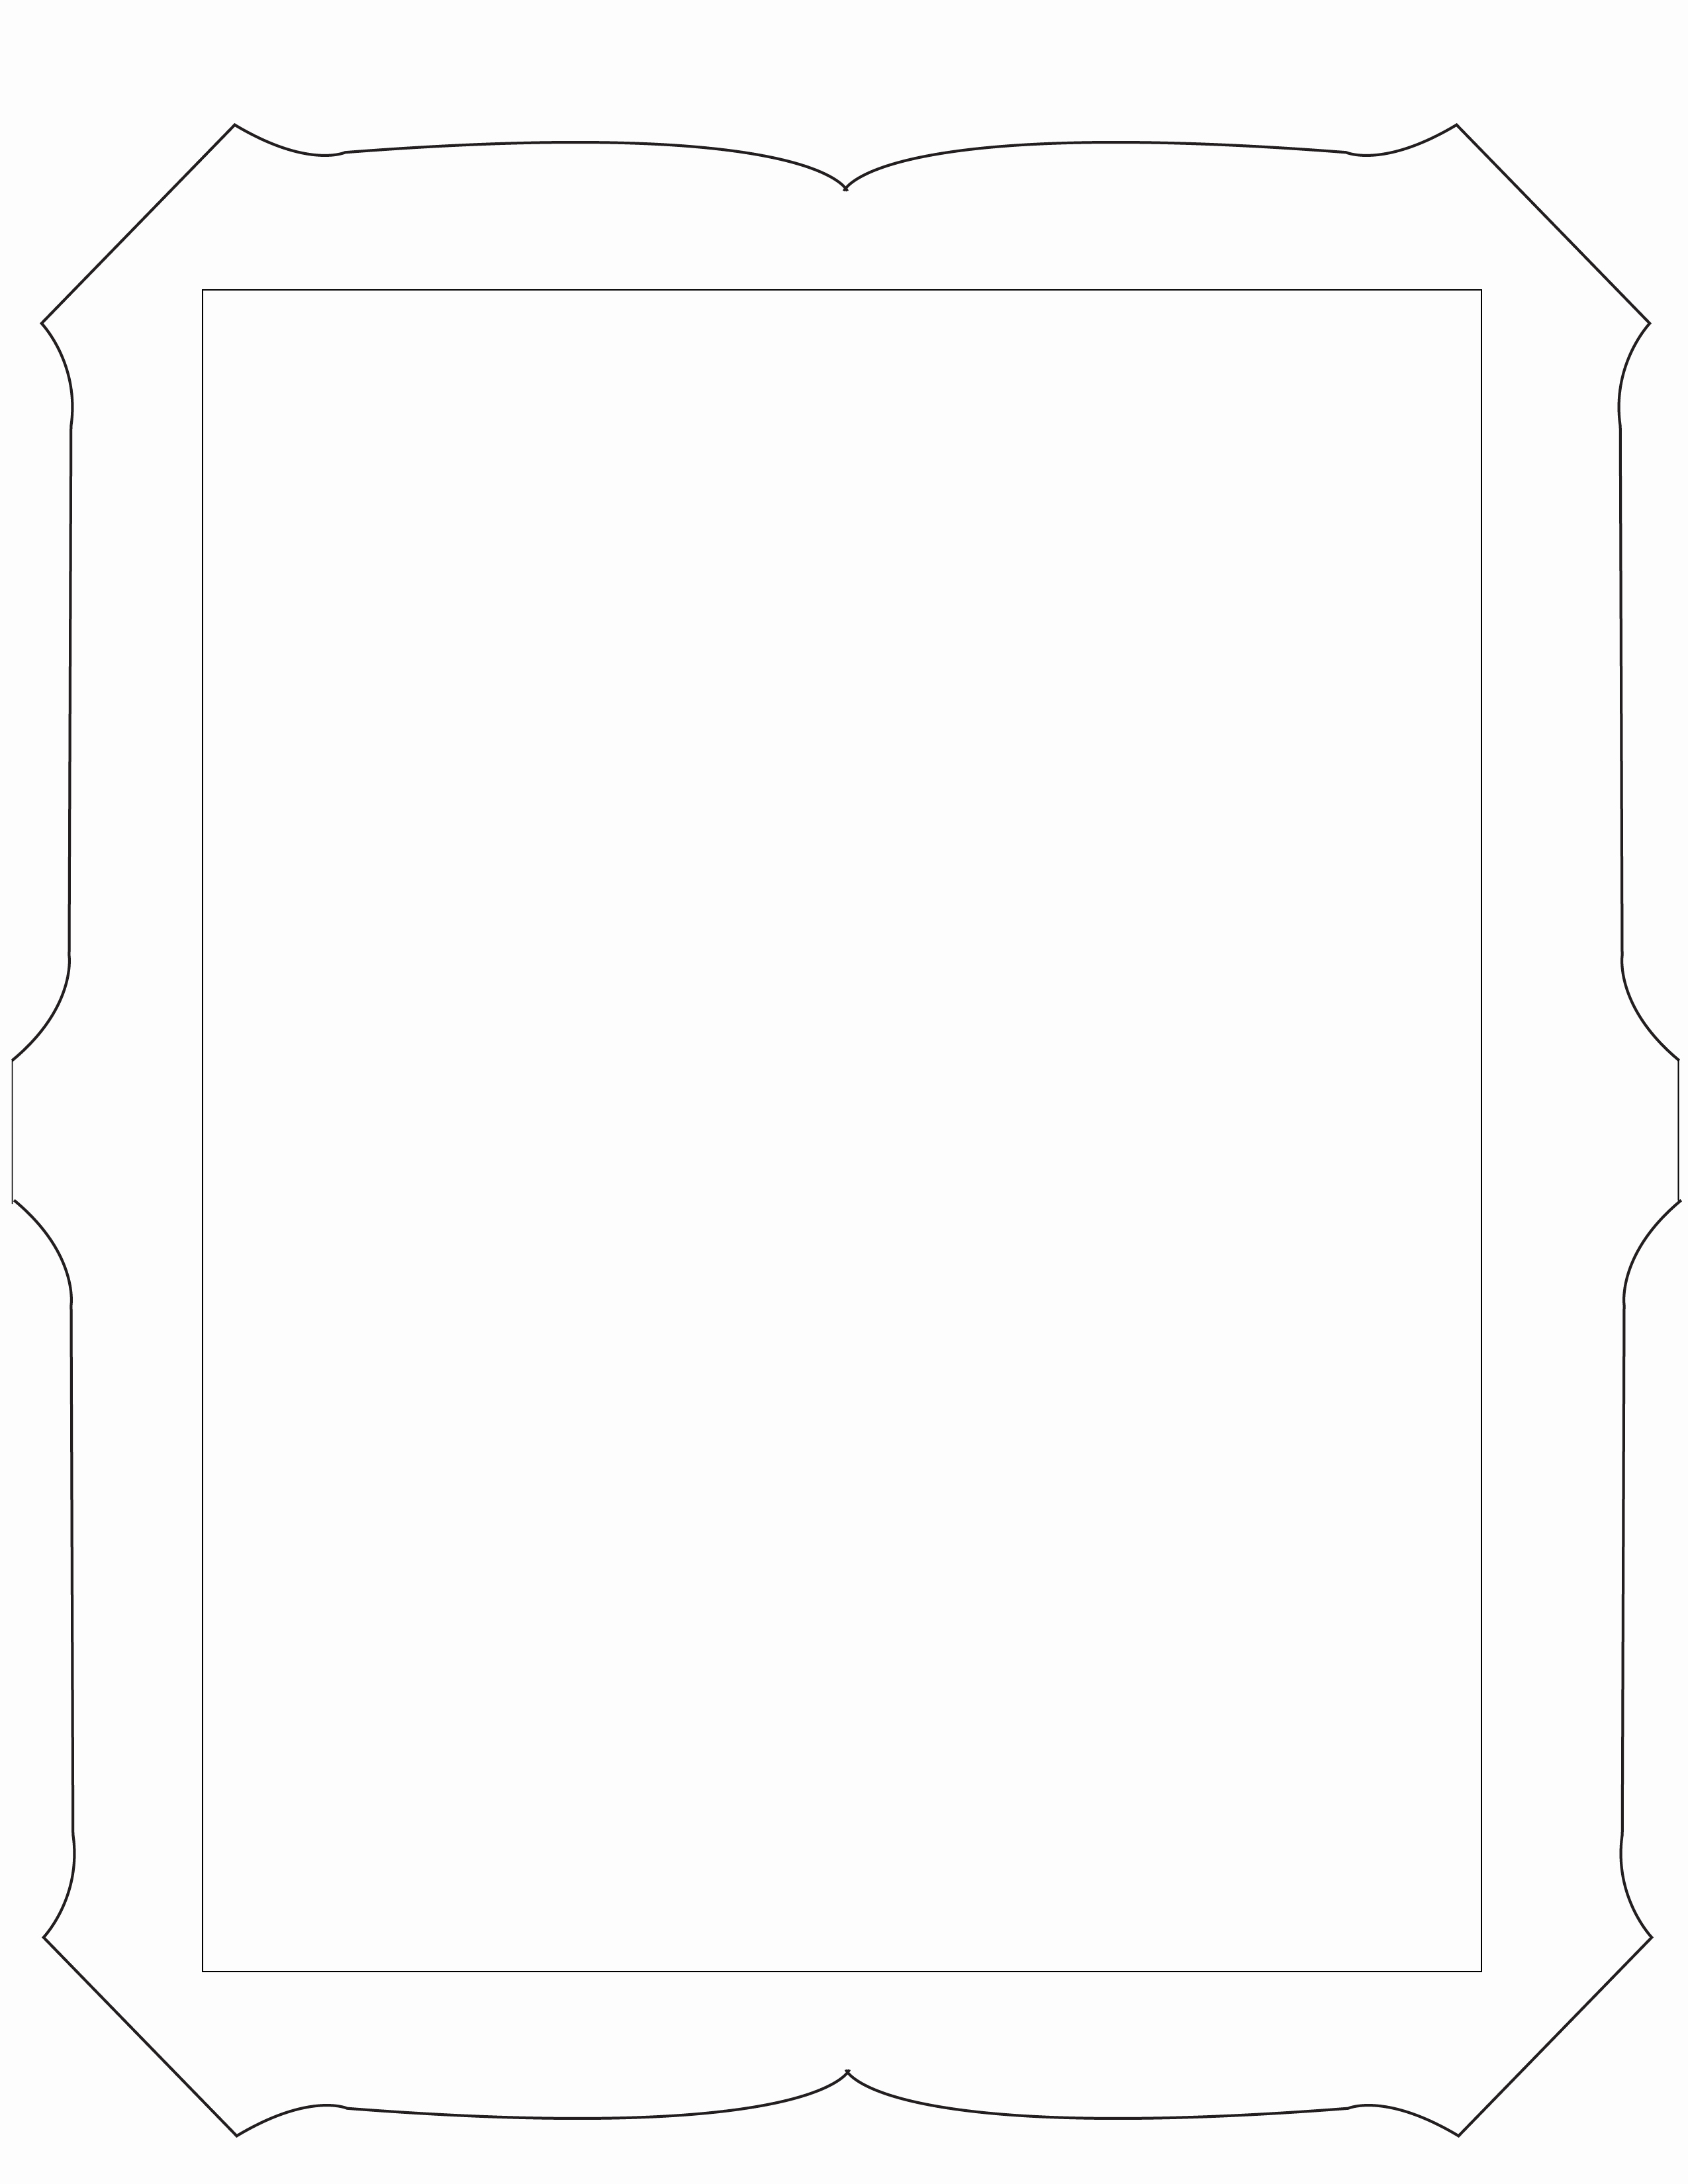 Free Printable Picture Frame Templates Best Of 6 Best Of Cool Picture Frame Design Printable